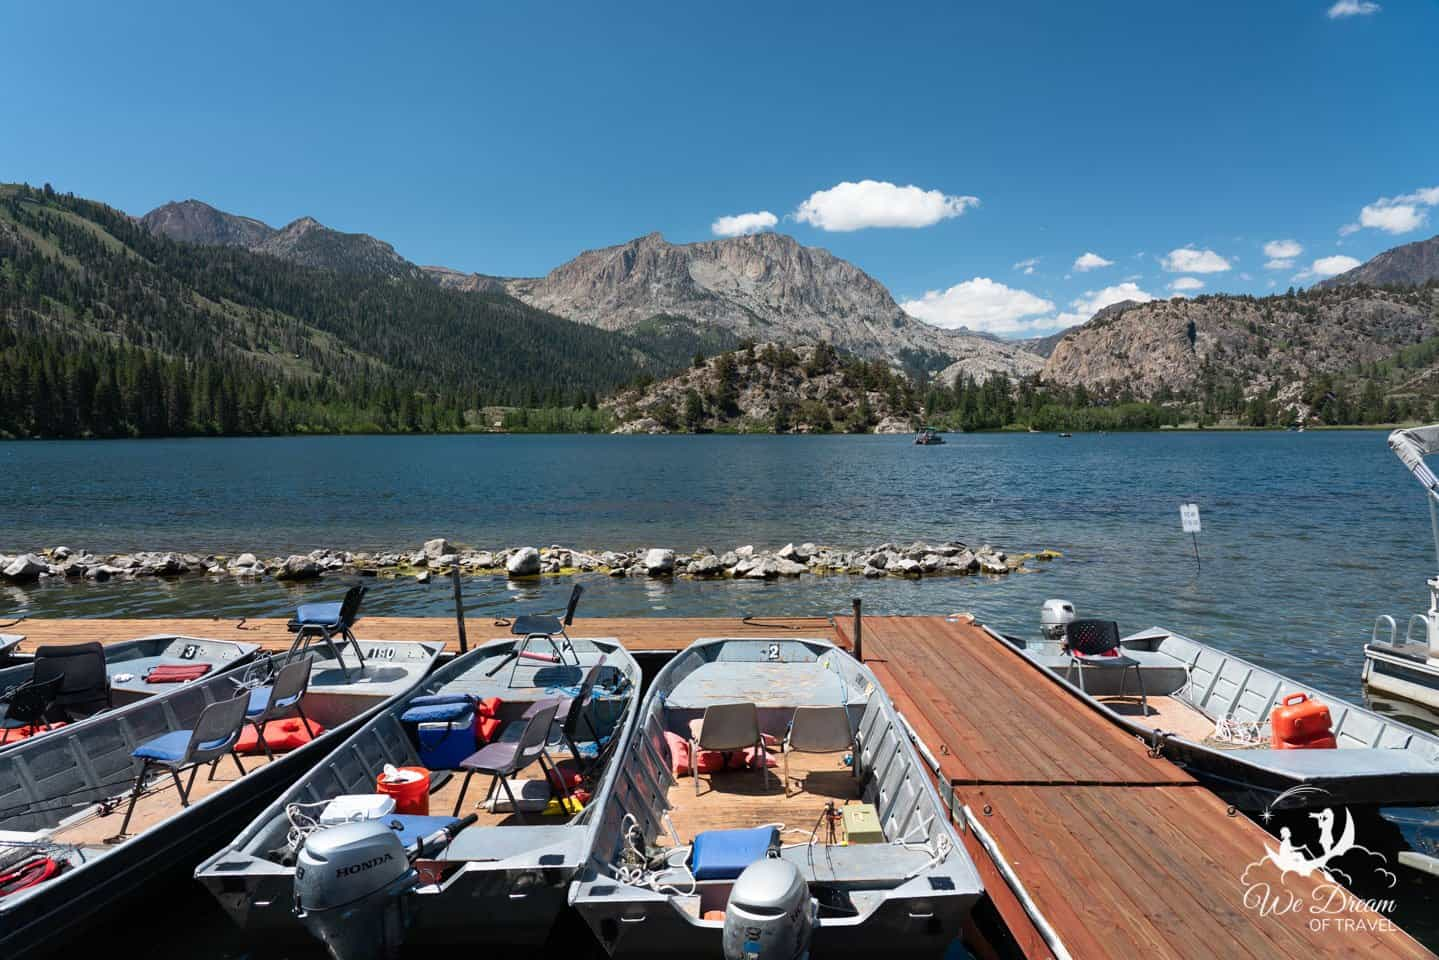 Boating is one of the most popular reasons to head for the June Lakes Loop in the summer.